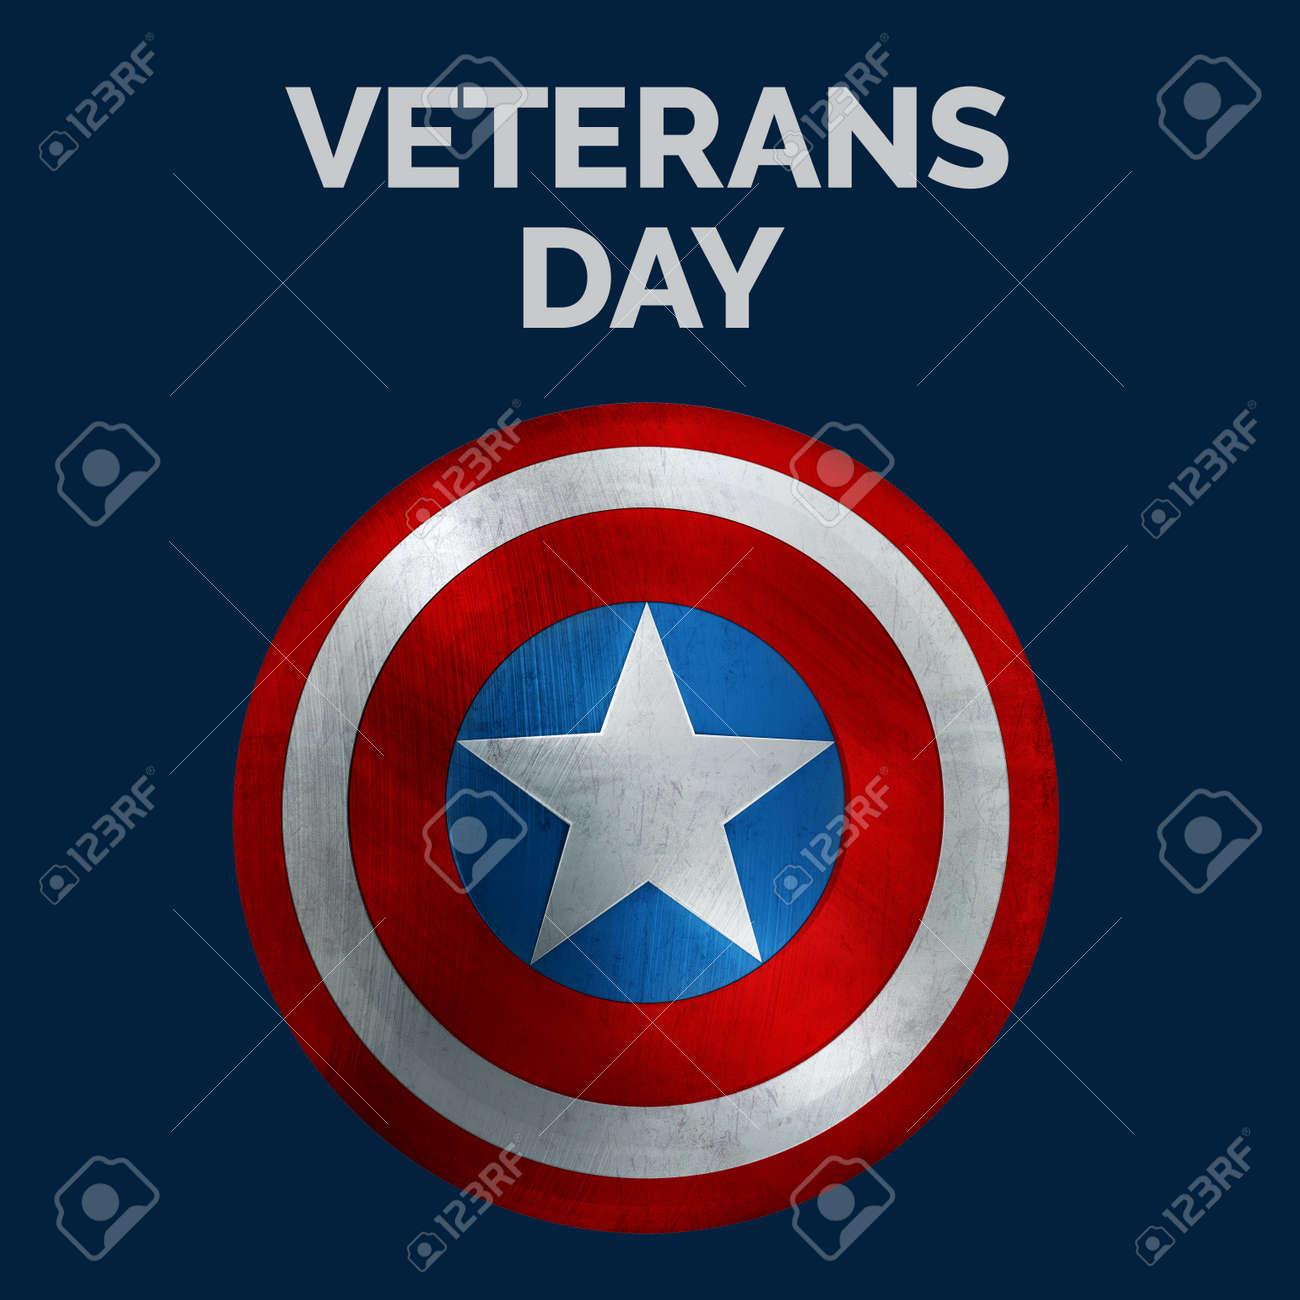 Veterans Day Banner with USA Shield. 3D Illustration. - 148347490